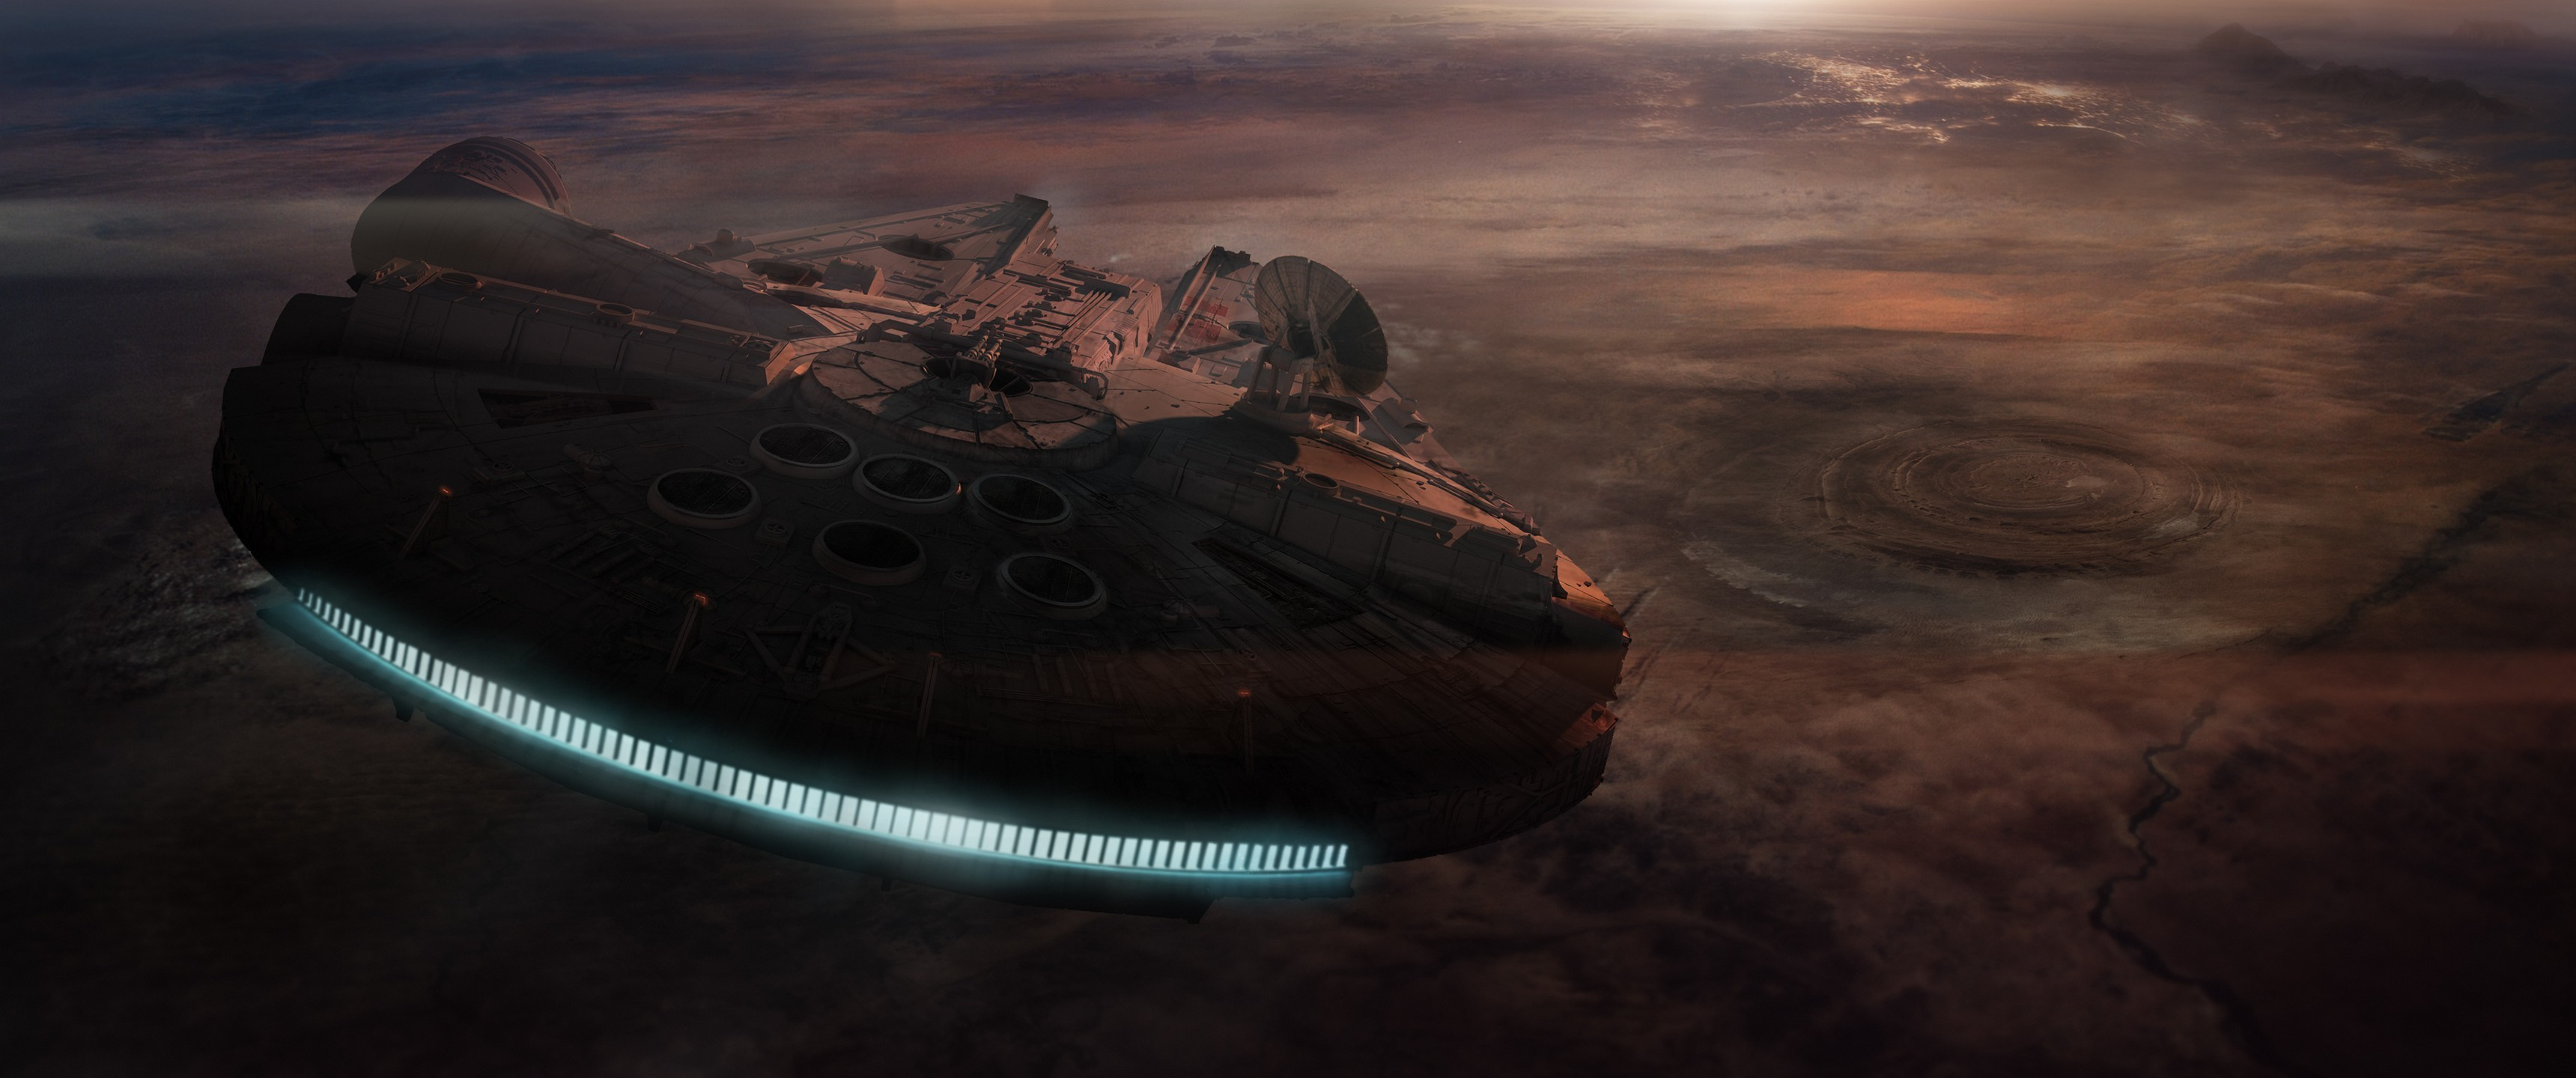 Star Wars, Millennium Falcon Wallpapers HD / Desktop and Mobile Backgrounds